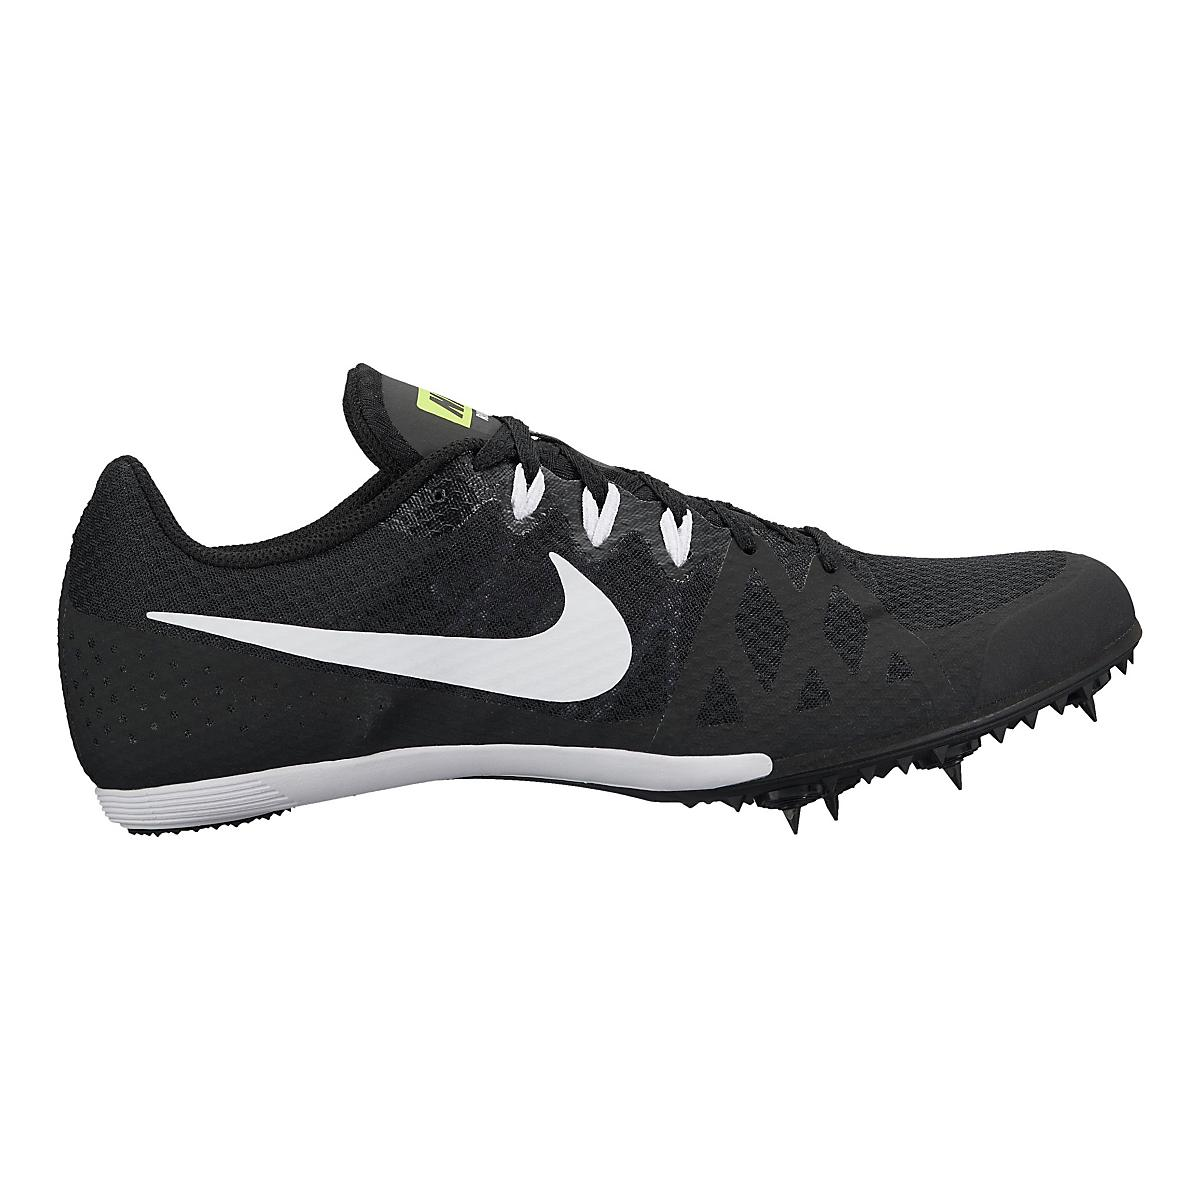 san francisco 848a9 25e28 Mens Nike Zoom Rival M 8 Track and Field Shoe at Road Runner Sports